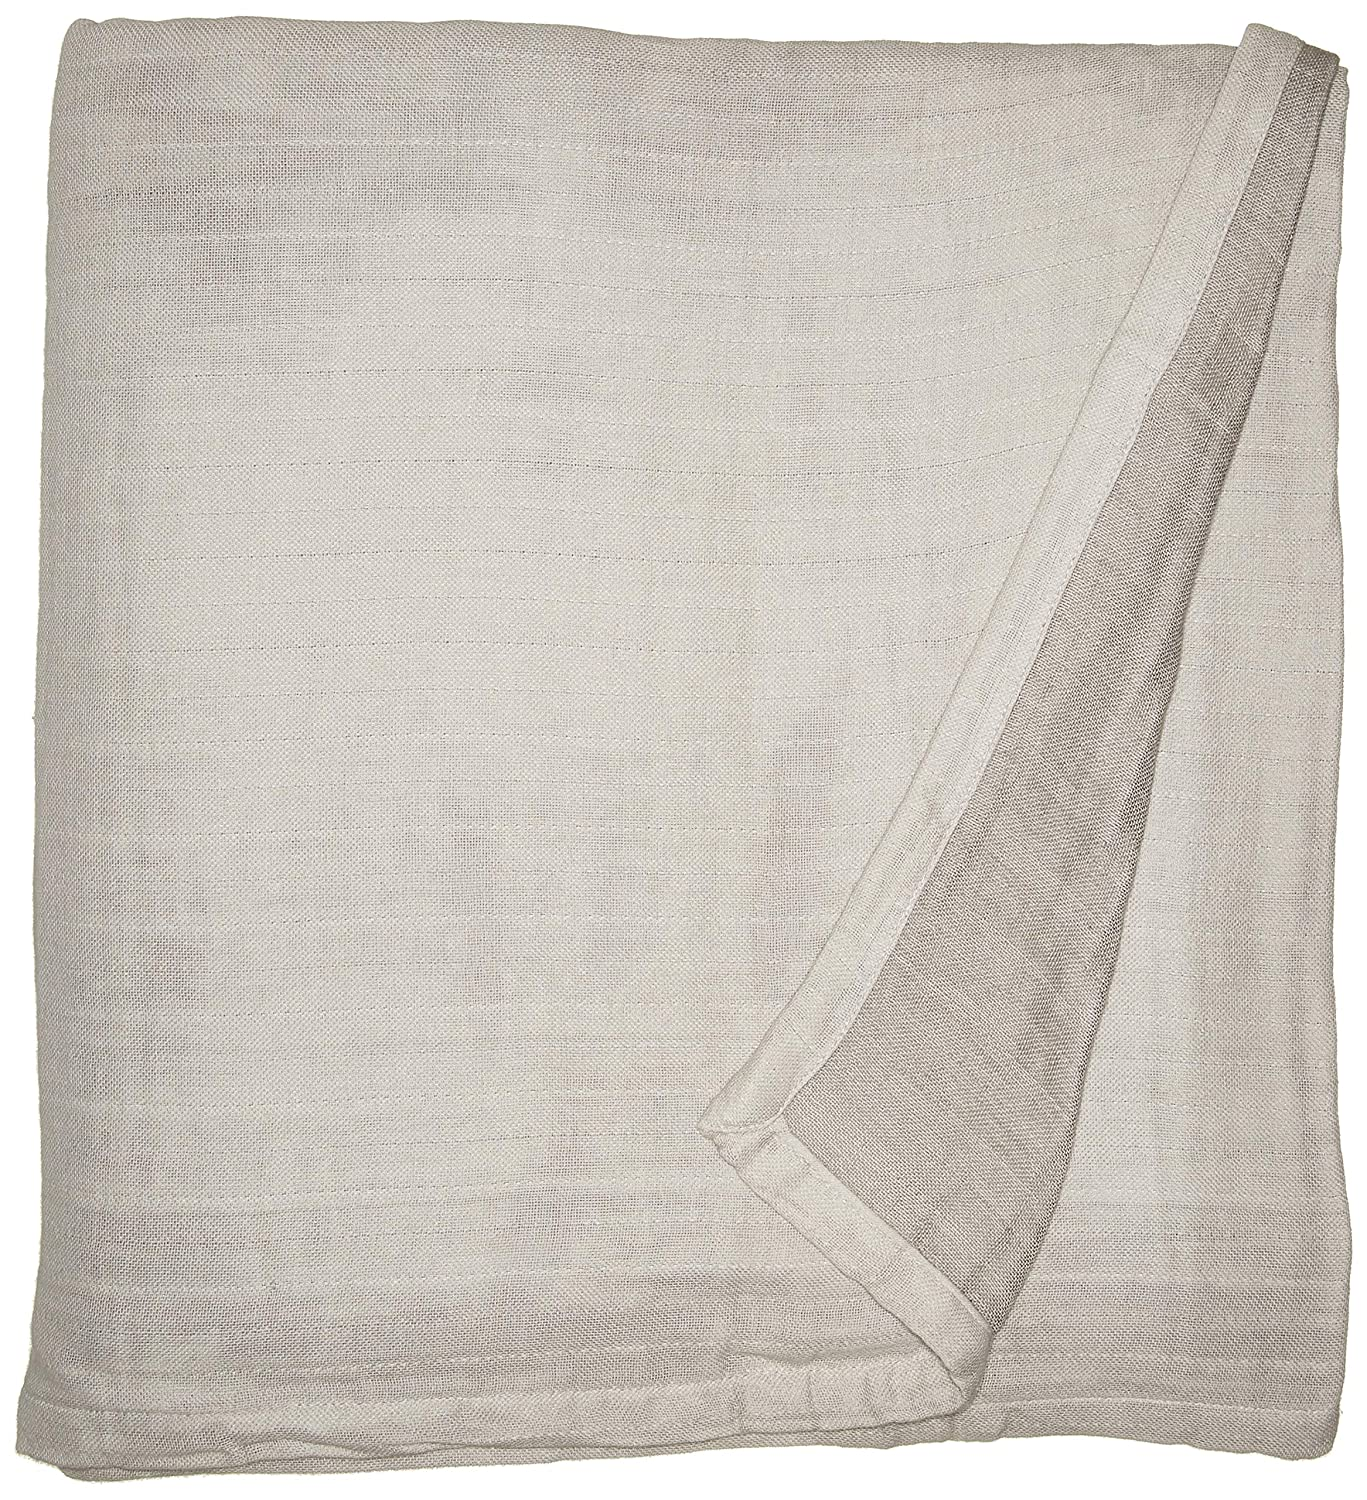 Kenneth Cole Reaction Home Soft & Cozy Reversible Cotton Woven Blanket - Full/Queen - Silver